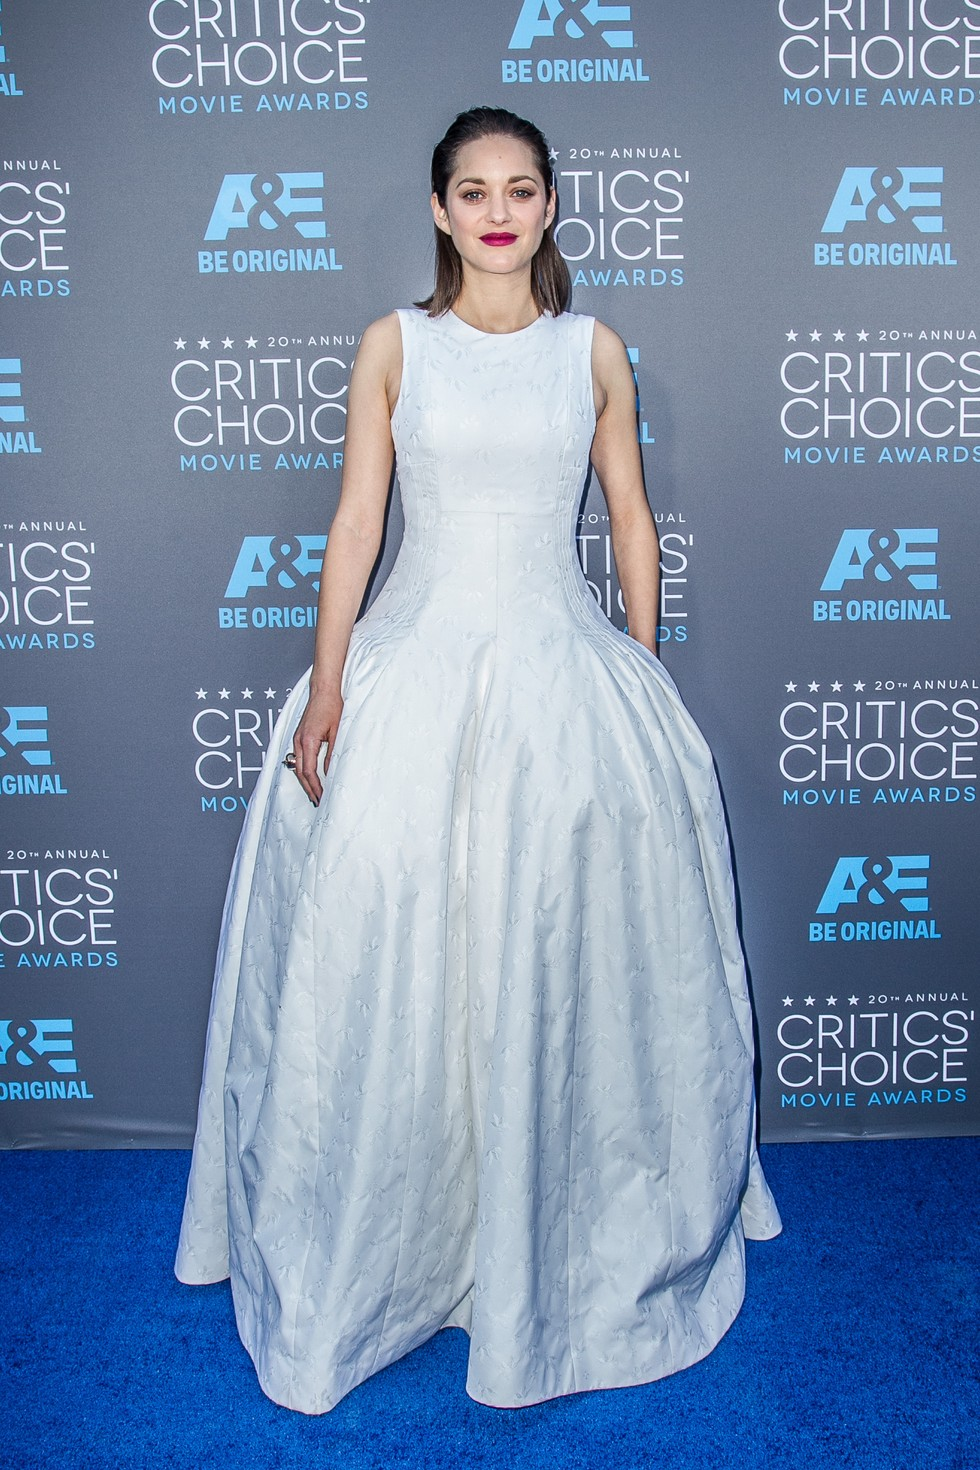 Critics Choice Award